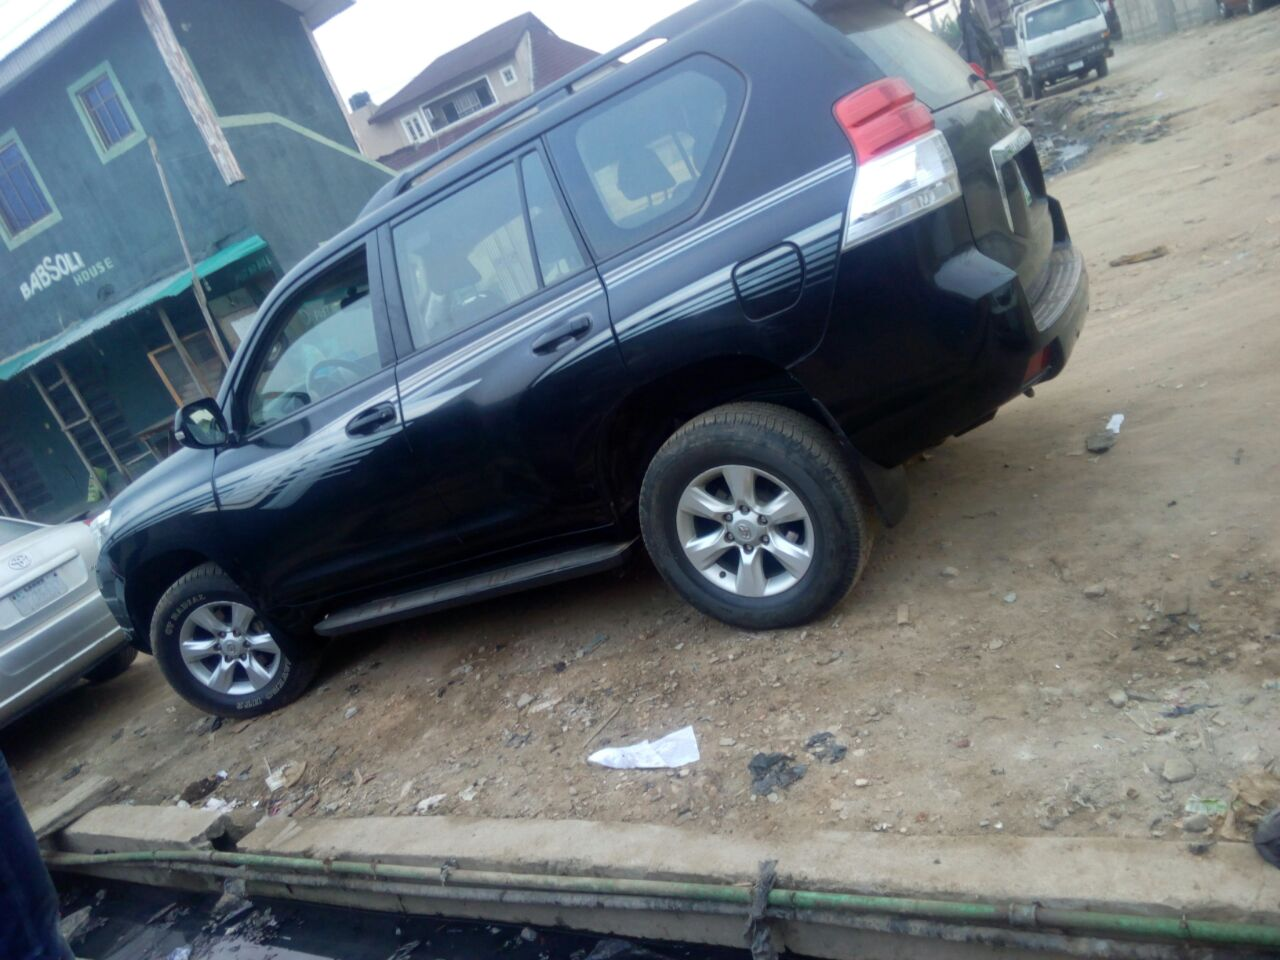 Sold Reg Toyota Land Cruiser Prado 2012 For Sale Interested Buyers Should Call Gabriel On 08134273596 Thanks Re